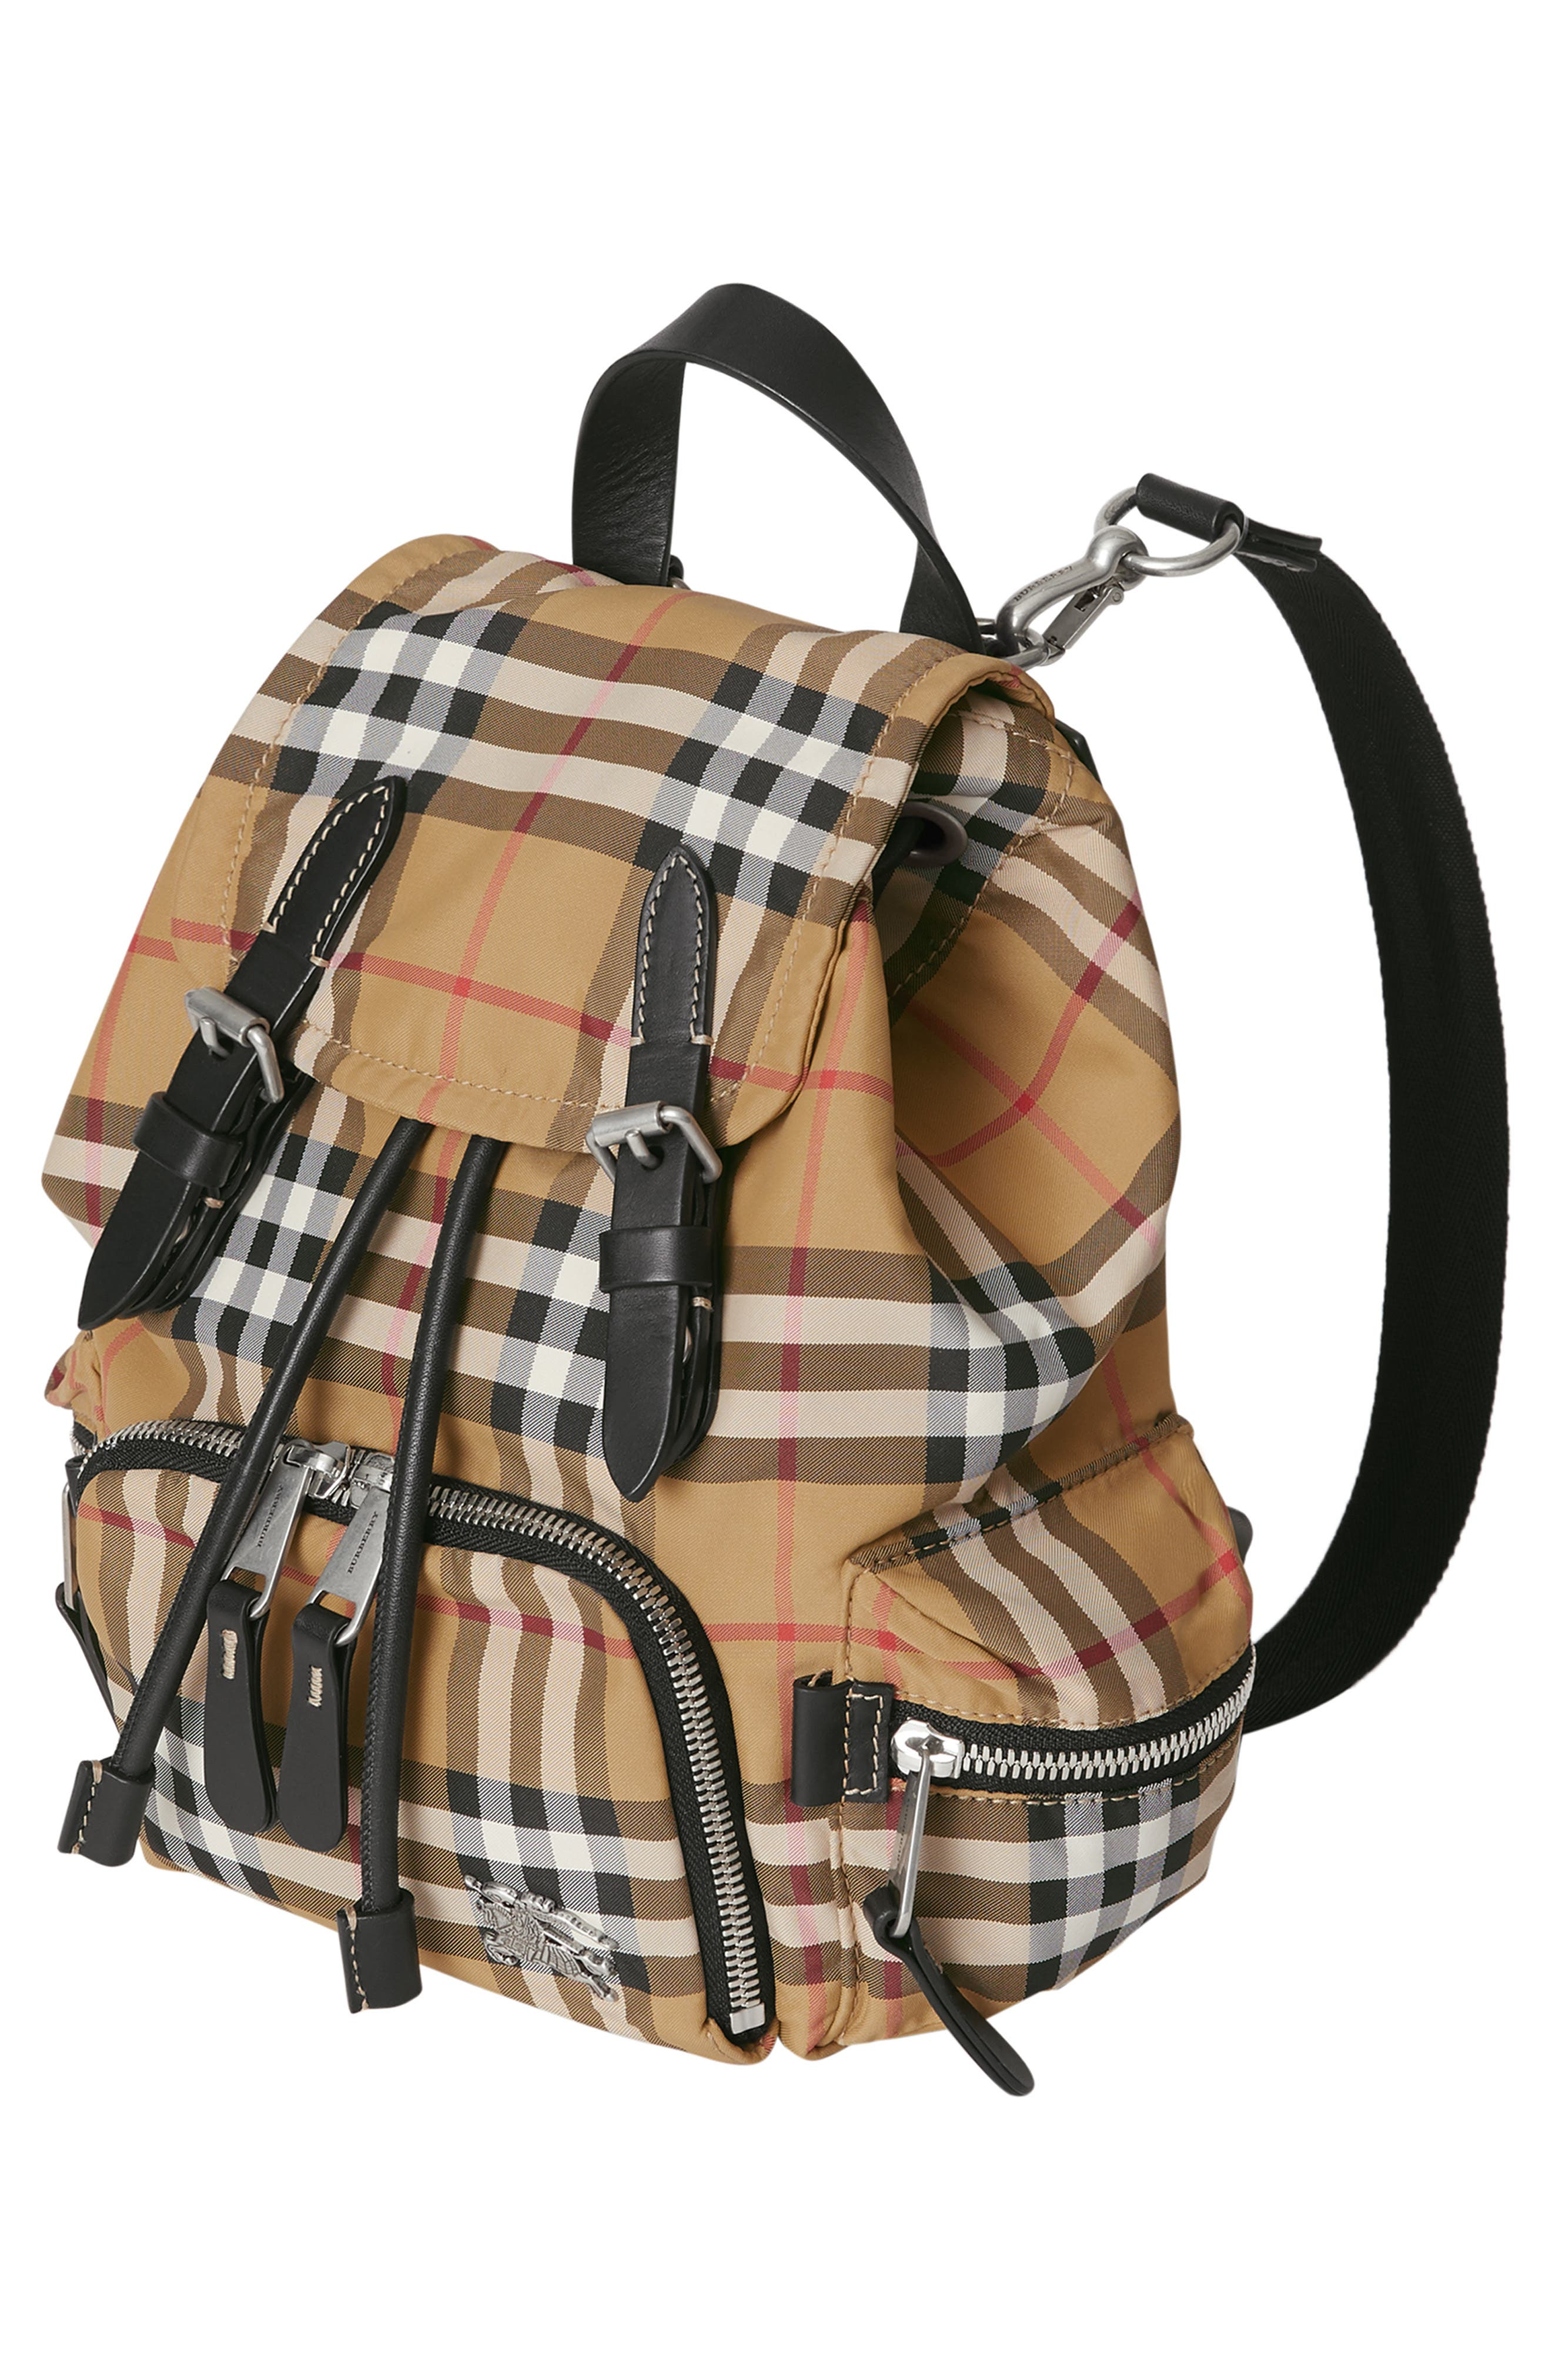 BURBERRY,                             Small Rucksack Vintage Check Nylon Backpack,                             Alternate thumbnail 4, color,                             ANTIQUE YELLOW/ BLACK